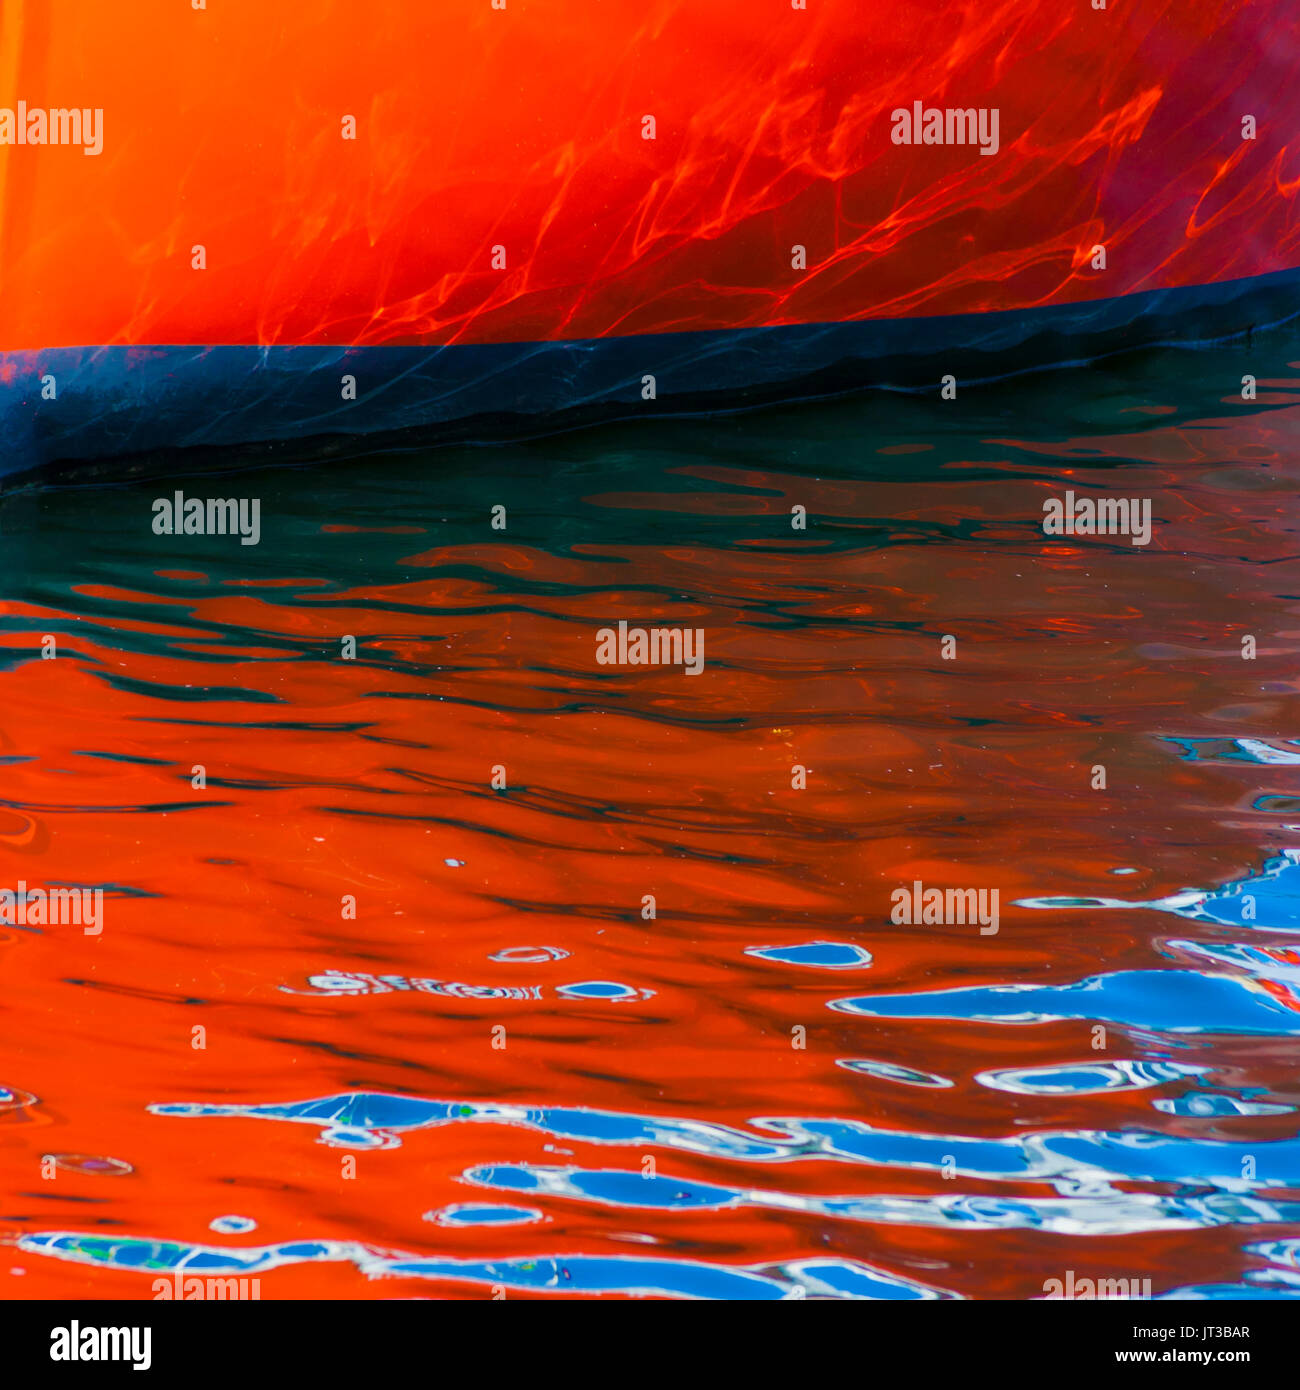 Boat hull reflected on rippled water. - Stock Image